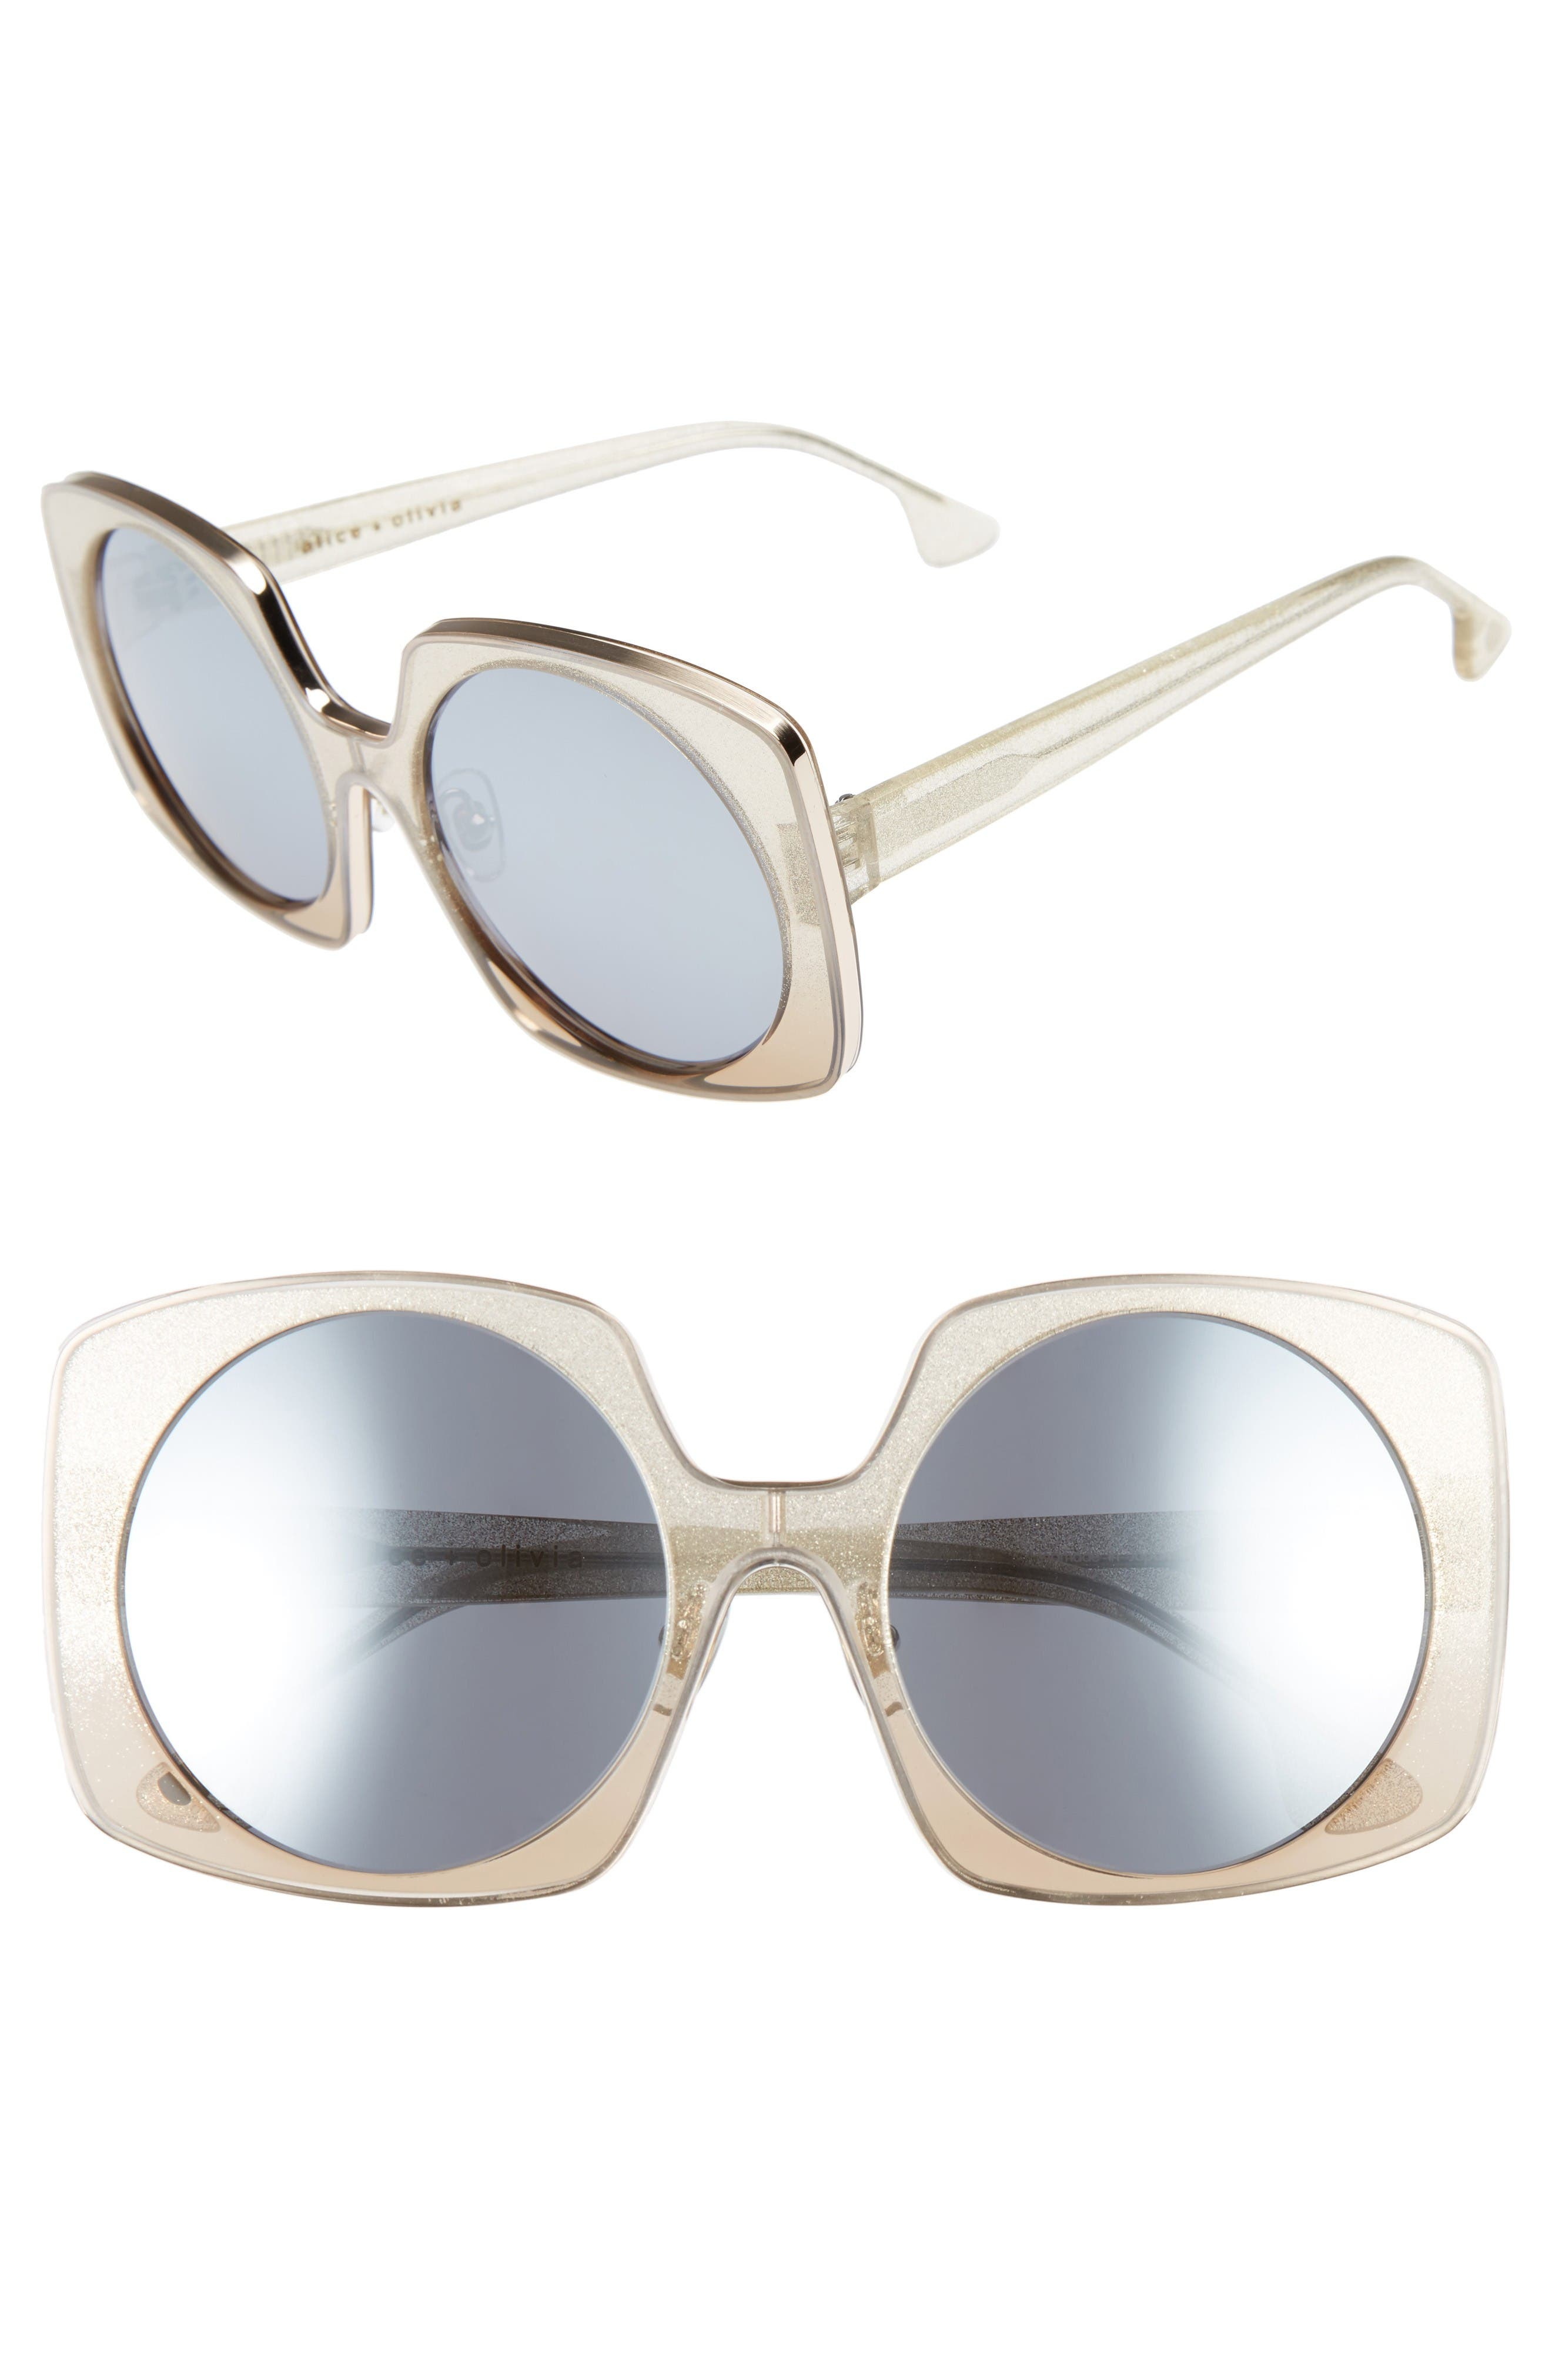 Canton 55mm Special Fit Square Sunglasses,                         Main,                         color, Stellar